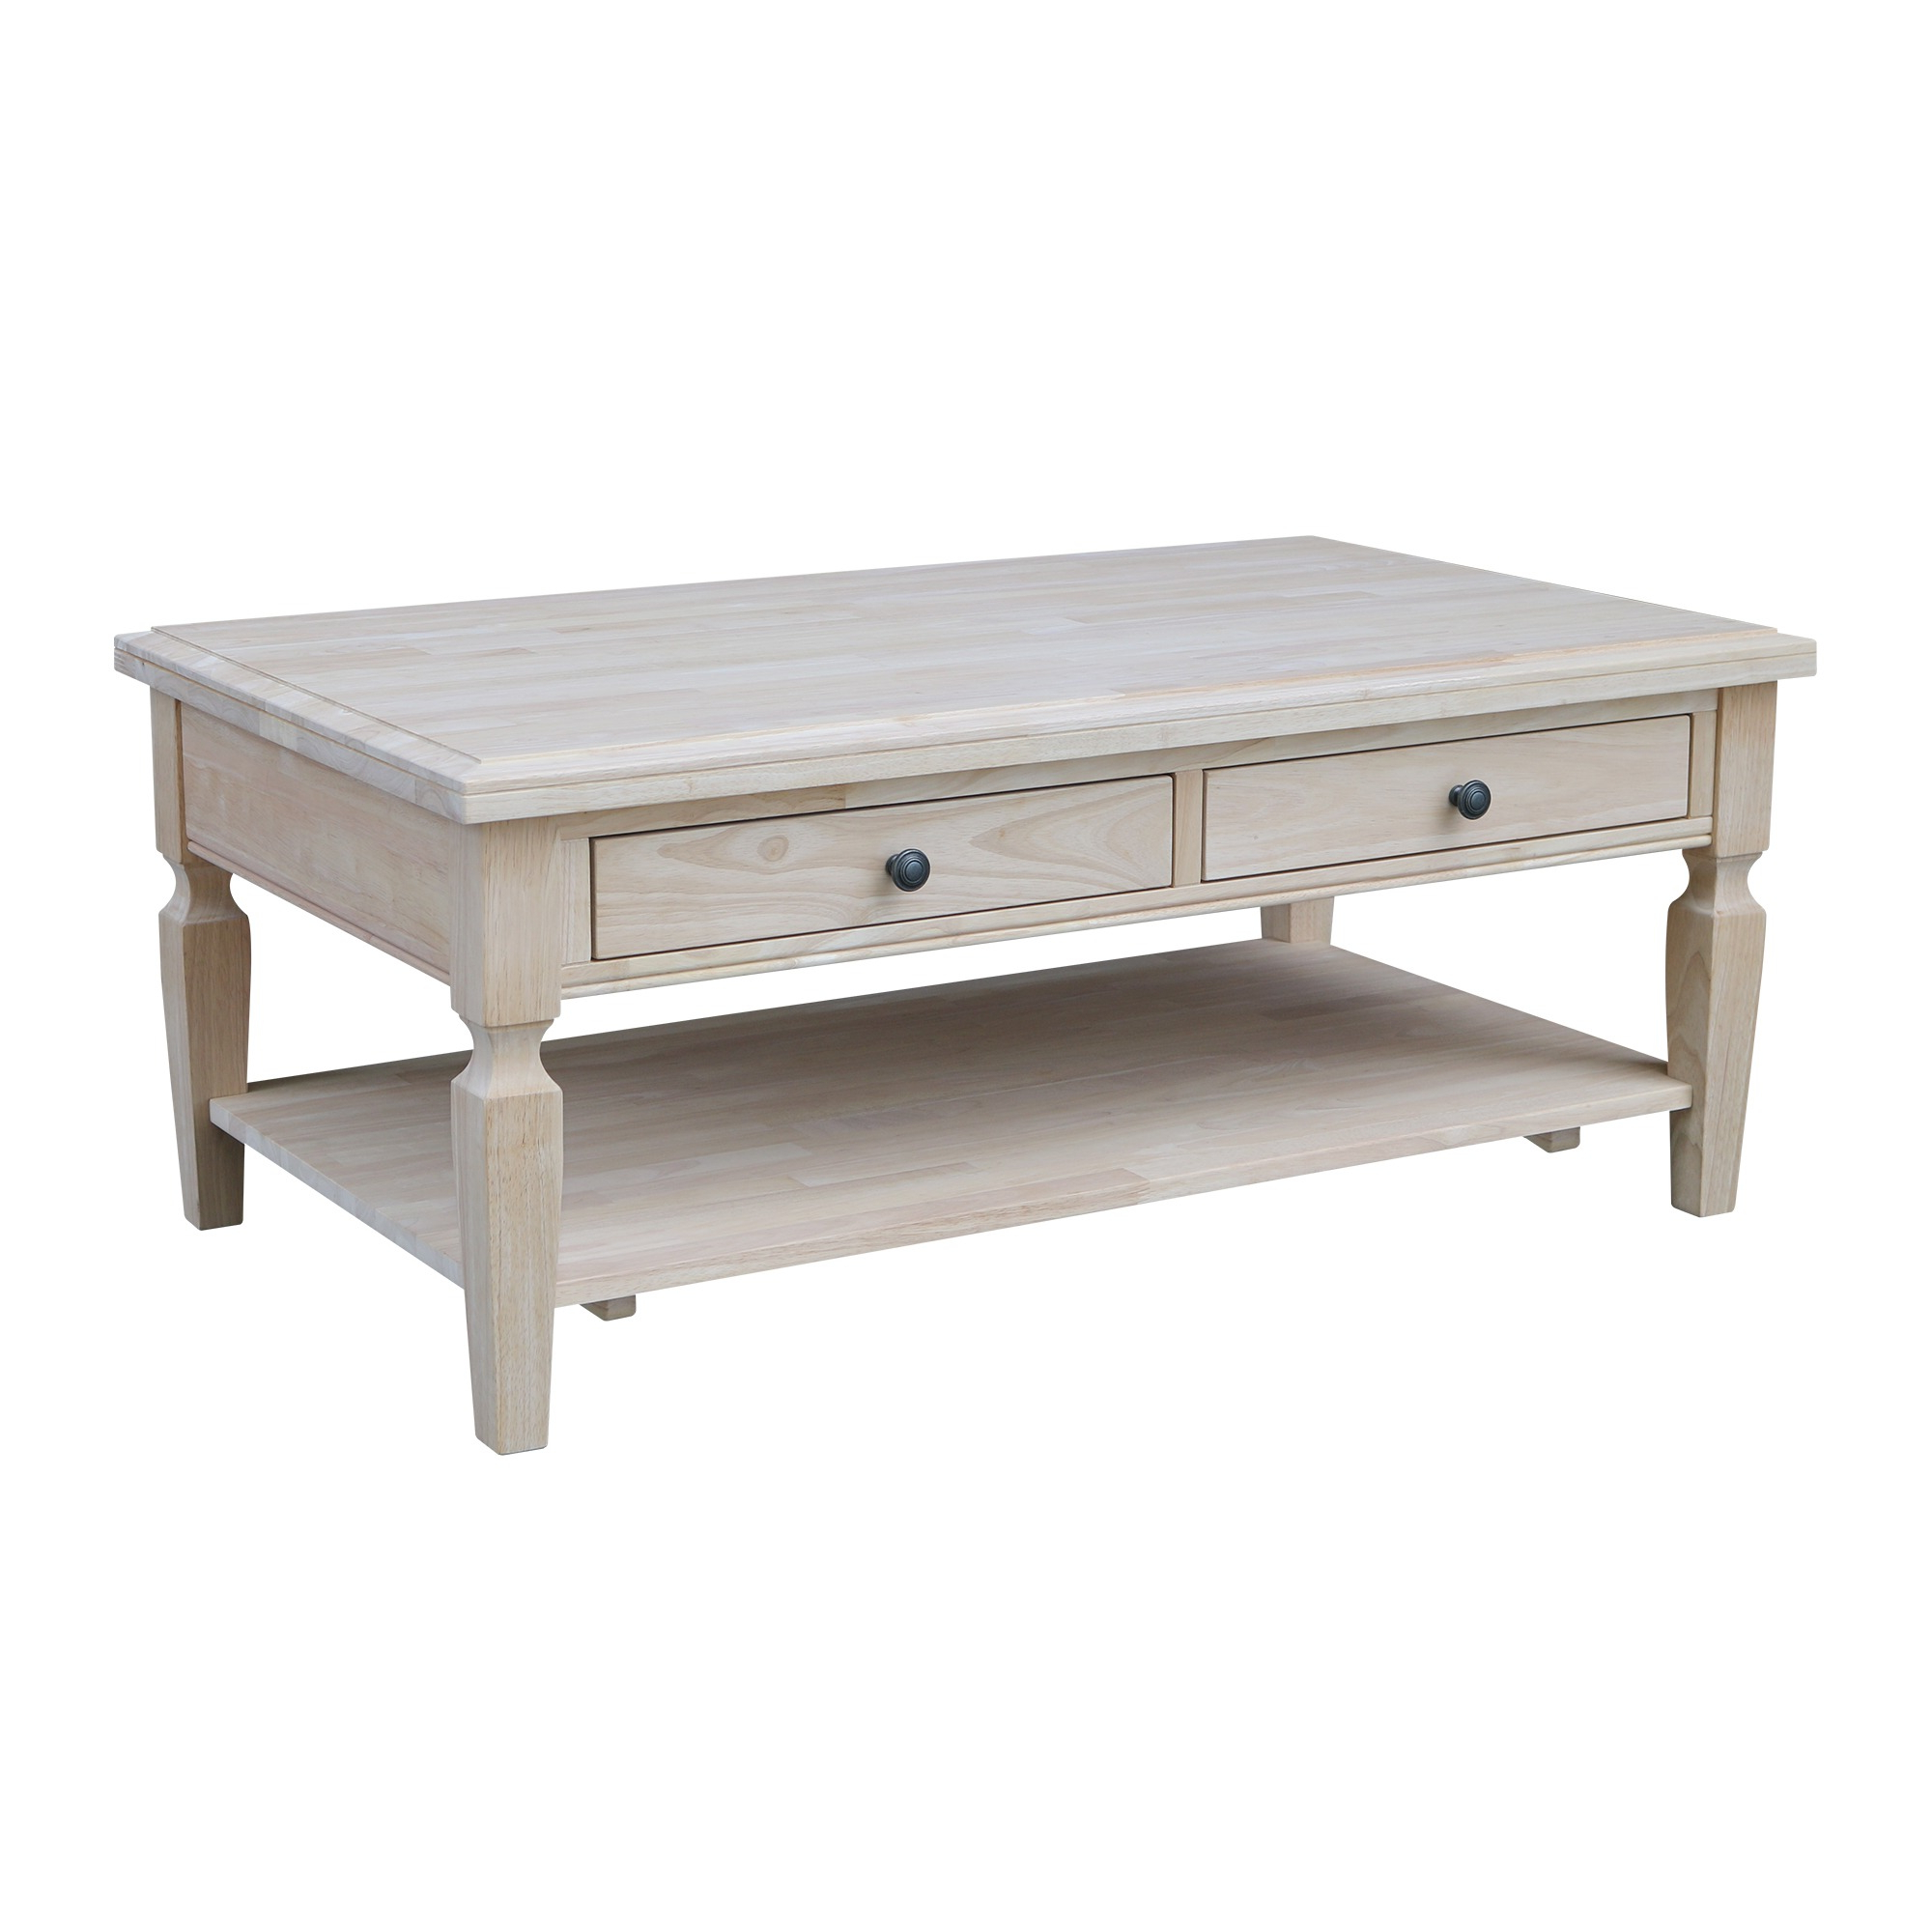 Ot 15C Vista Coffee Table W/ Free Shipping Within Fashionable Unfinished Solid Parawood Square Coffee Tables (View 9 of 20)